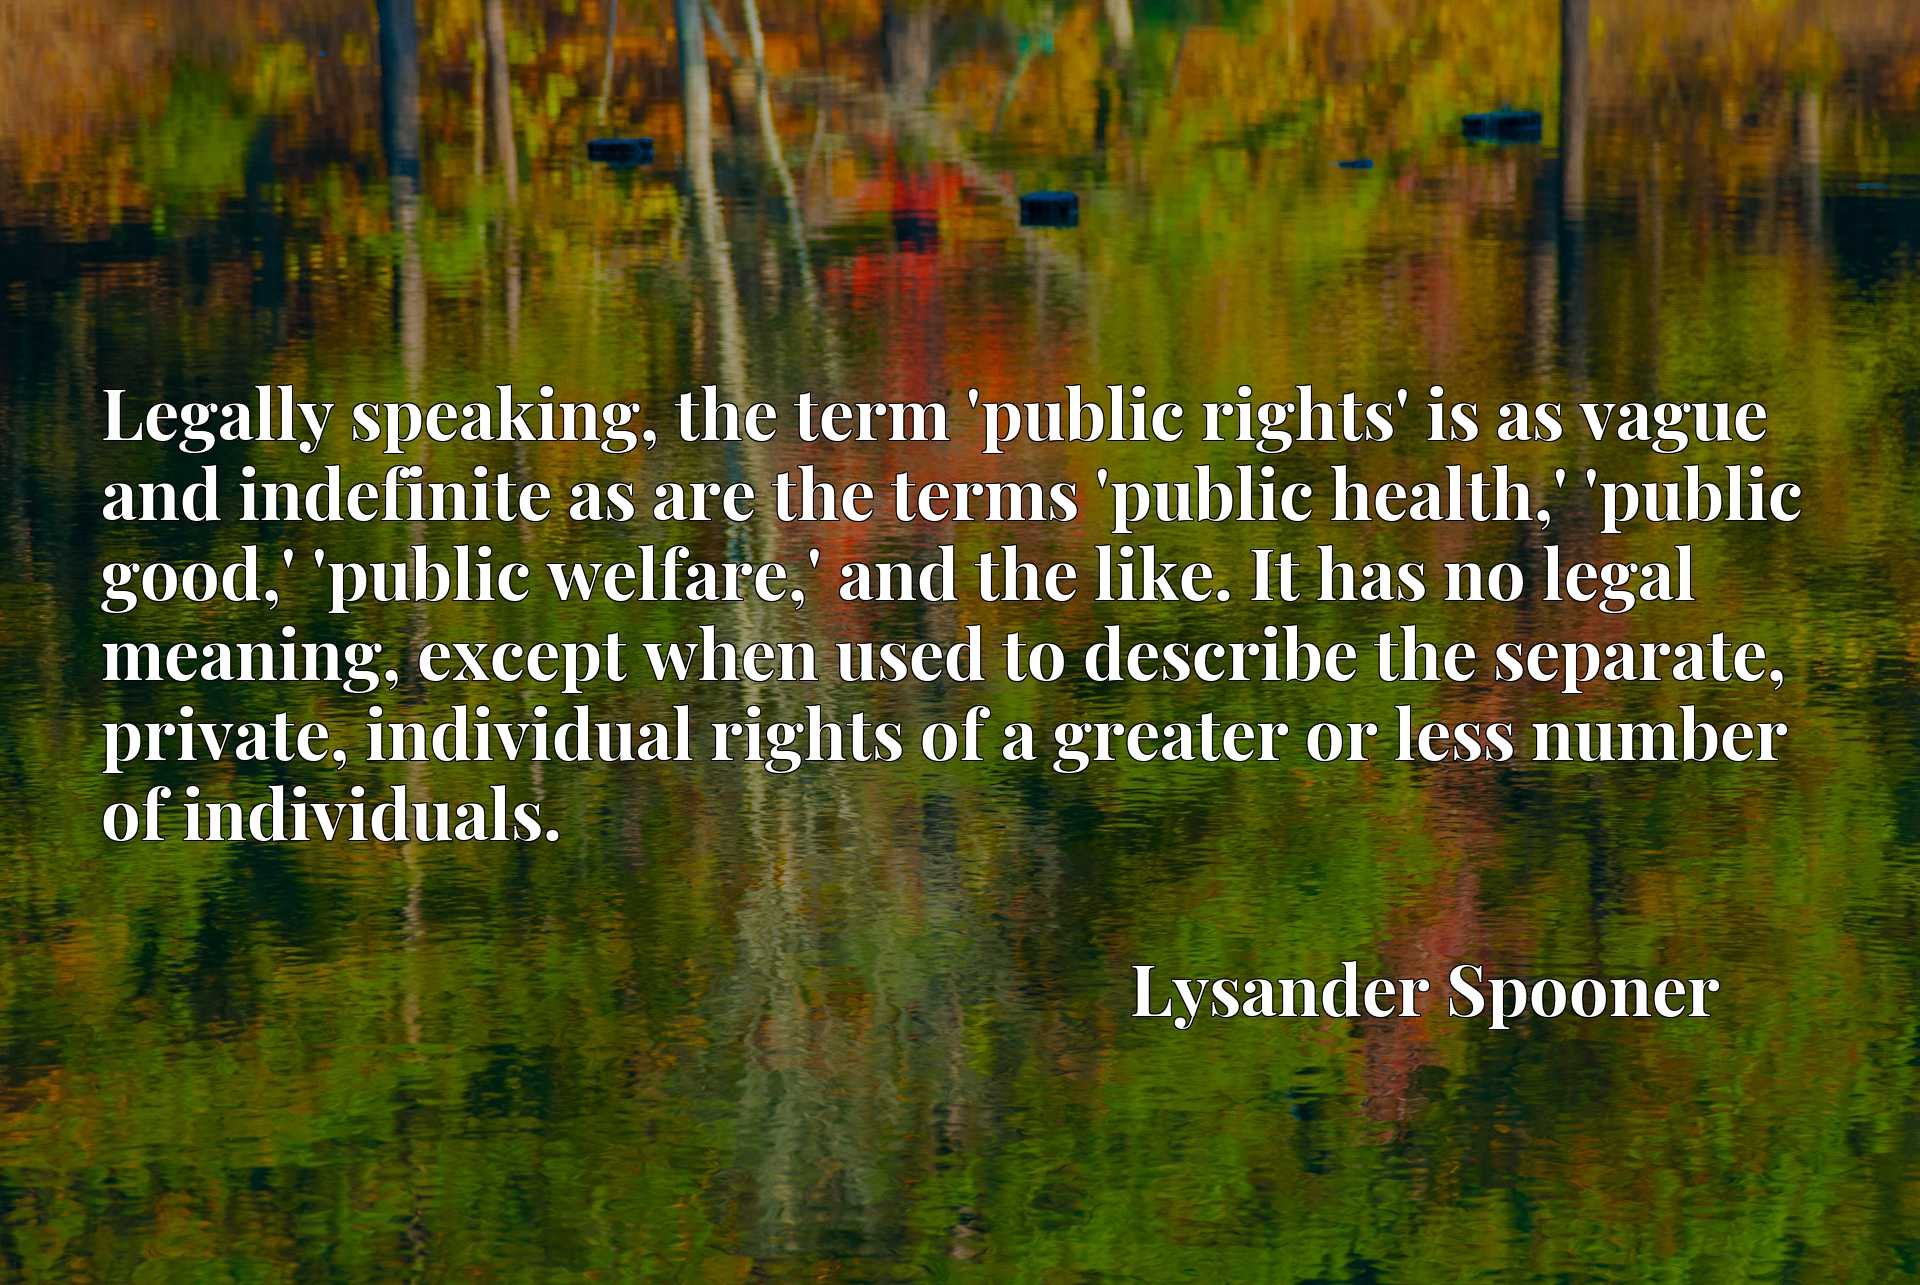 Legally speaking, the term 'public rights' is as vague and indefinite as are the terms 'public health,' 'public good,' 'public welfare,' and the like. It has no legal meaning, except when used to describe the separate, private, individual rights of a greater or less number of individuals.